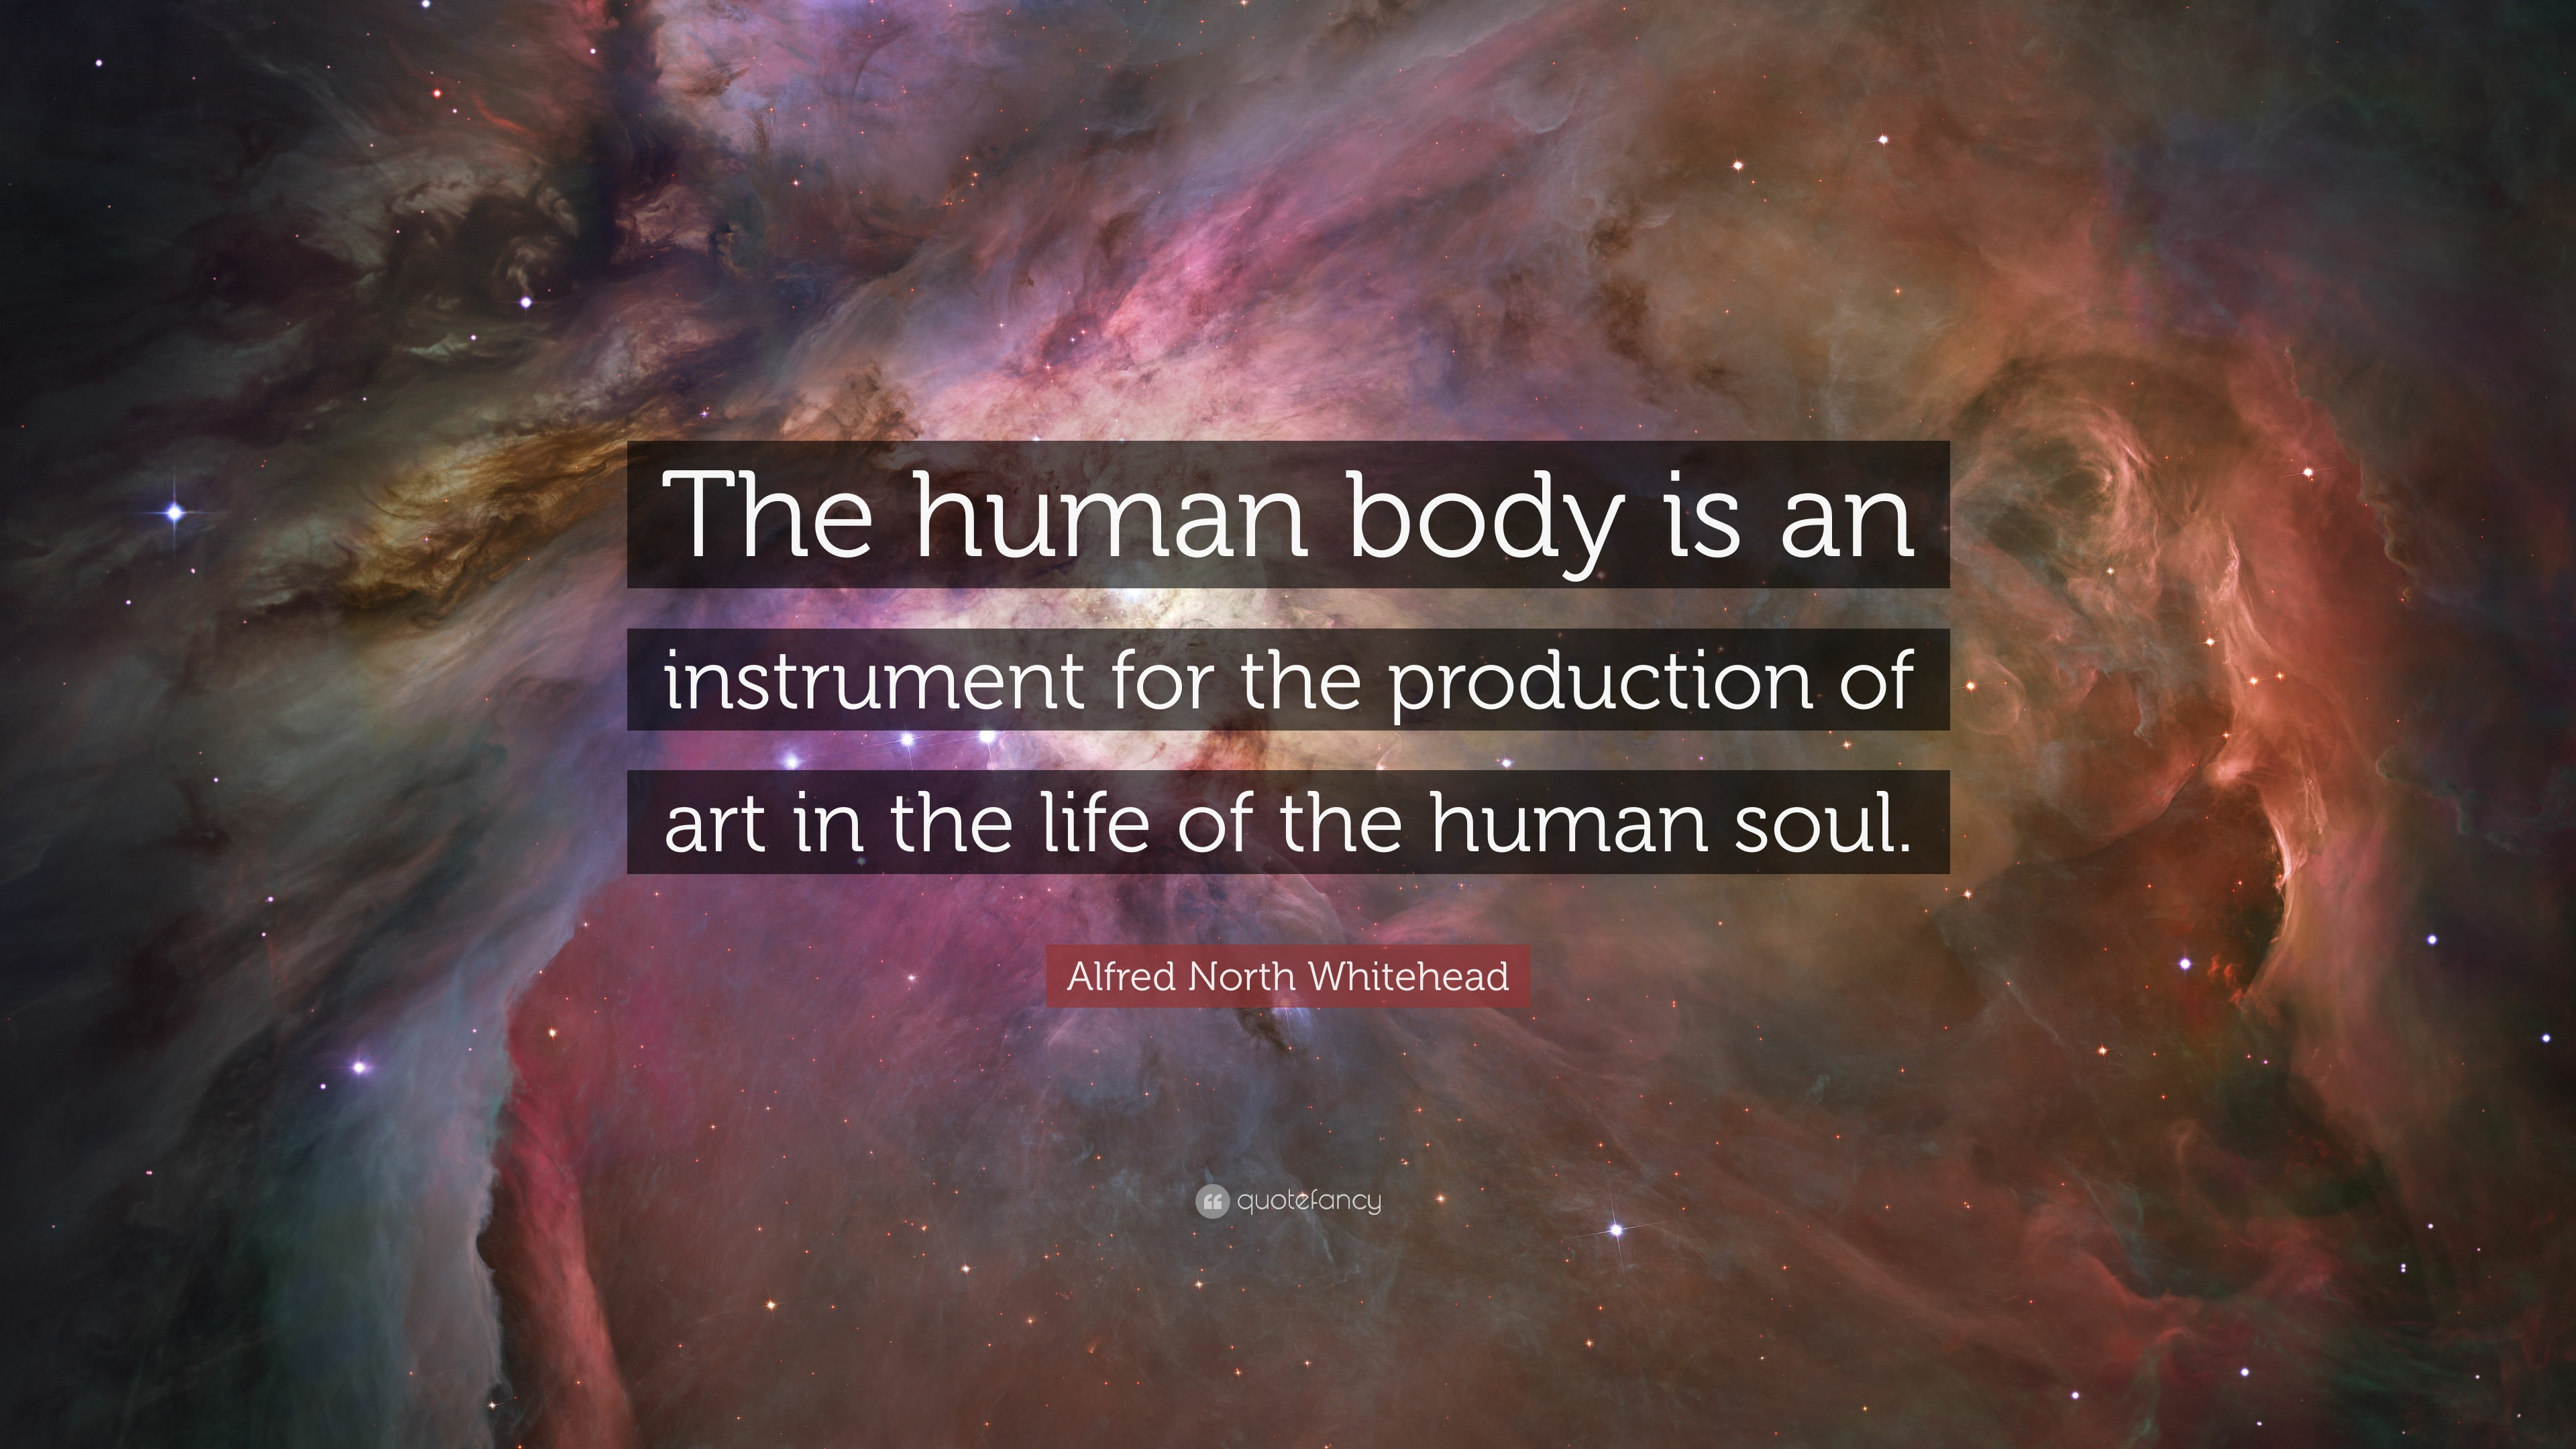 Alfred North Whitehead Quote The Human Body Is An Instrument For The Production Of Art In The Life Of The Human Soul 7 Wallpapers Quotefancy